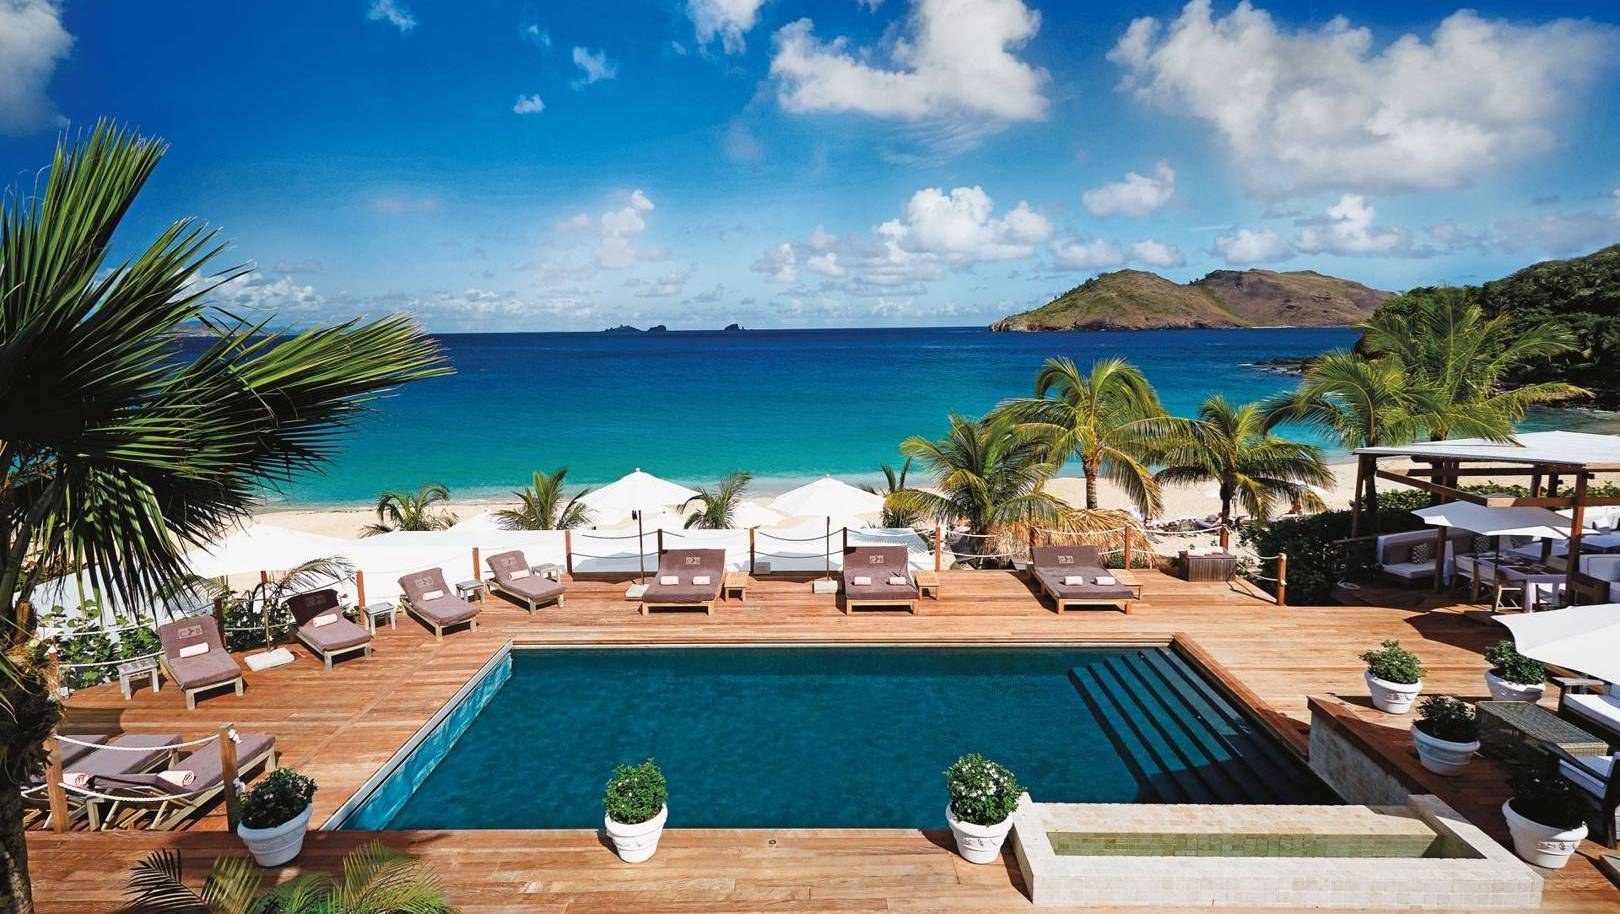 Top 10 Best Hotels And Resorts in St Barth